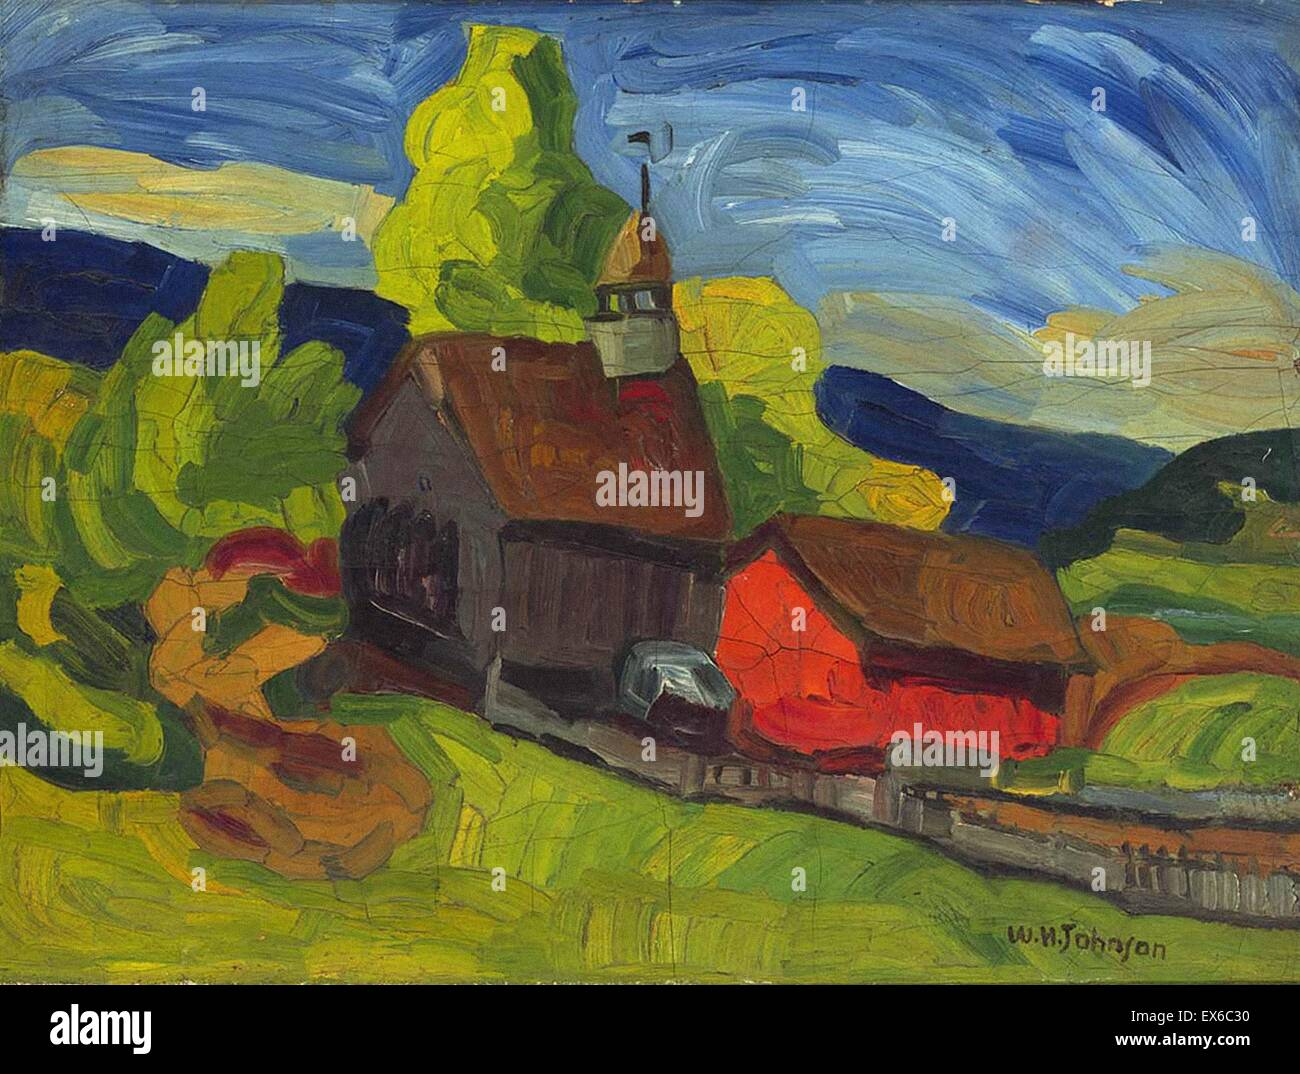 William H. Johnson Kirche des Landes Stockbild